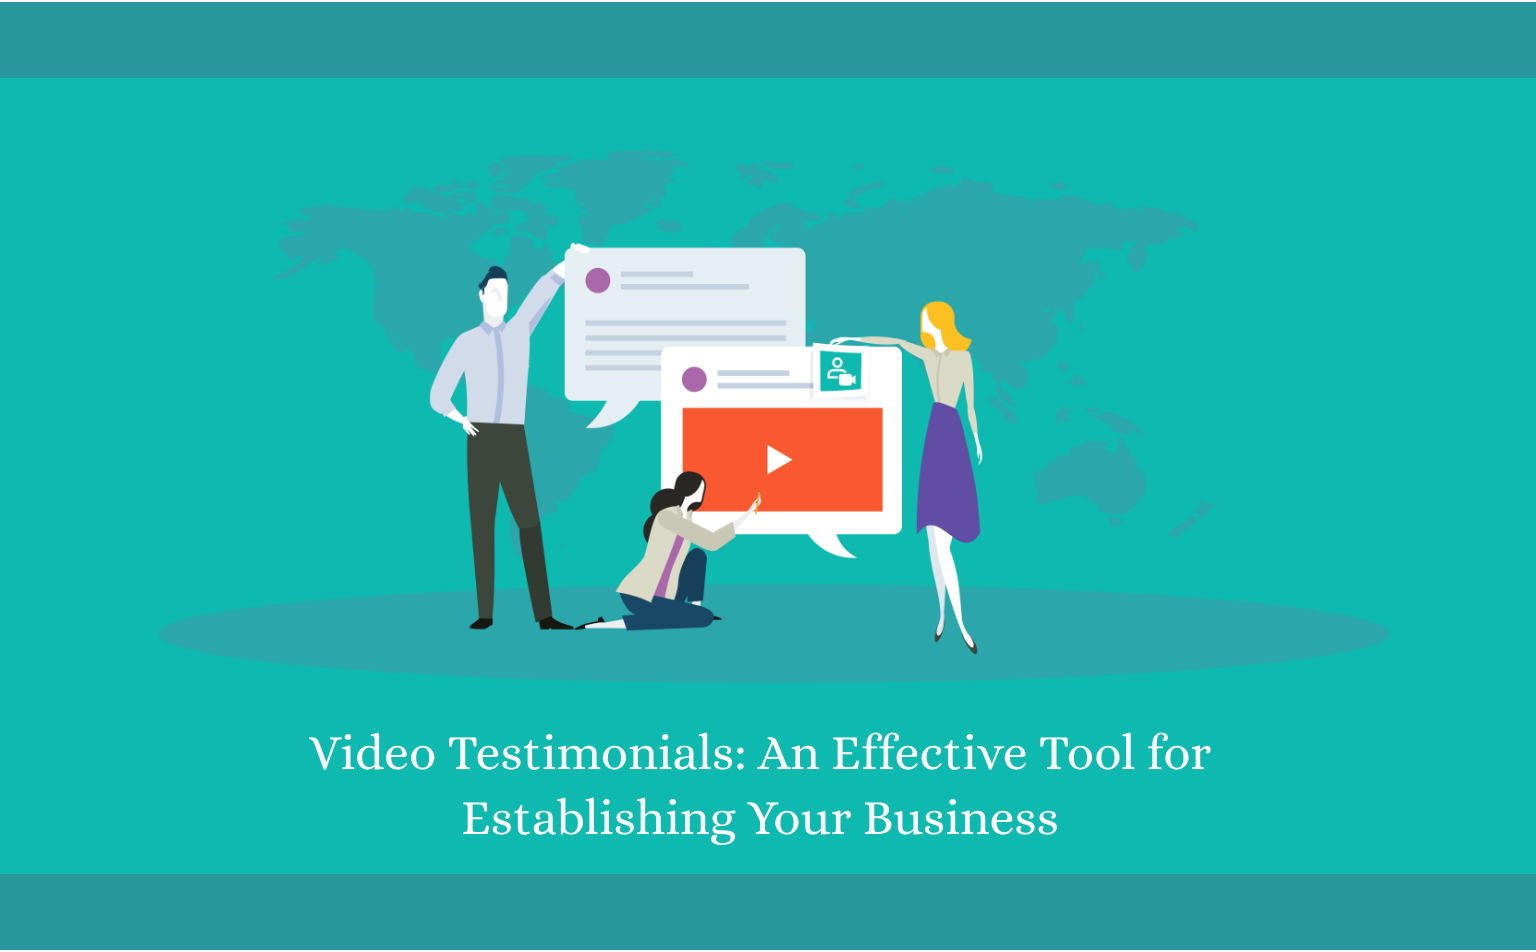 Video Testimonials- An Effective Tool for Establishing Your Business